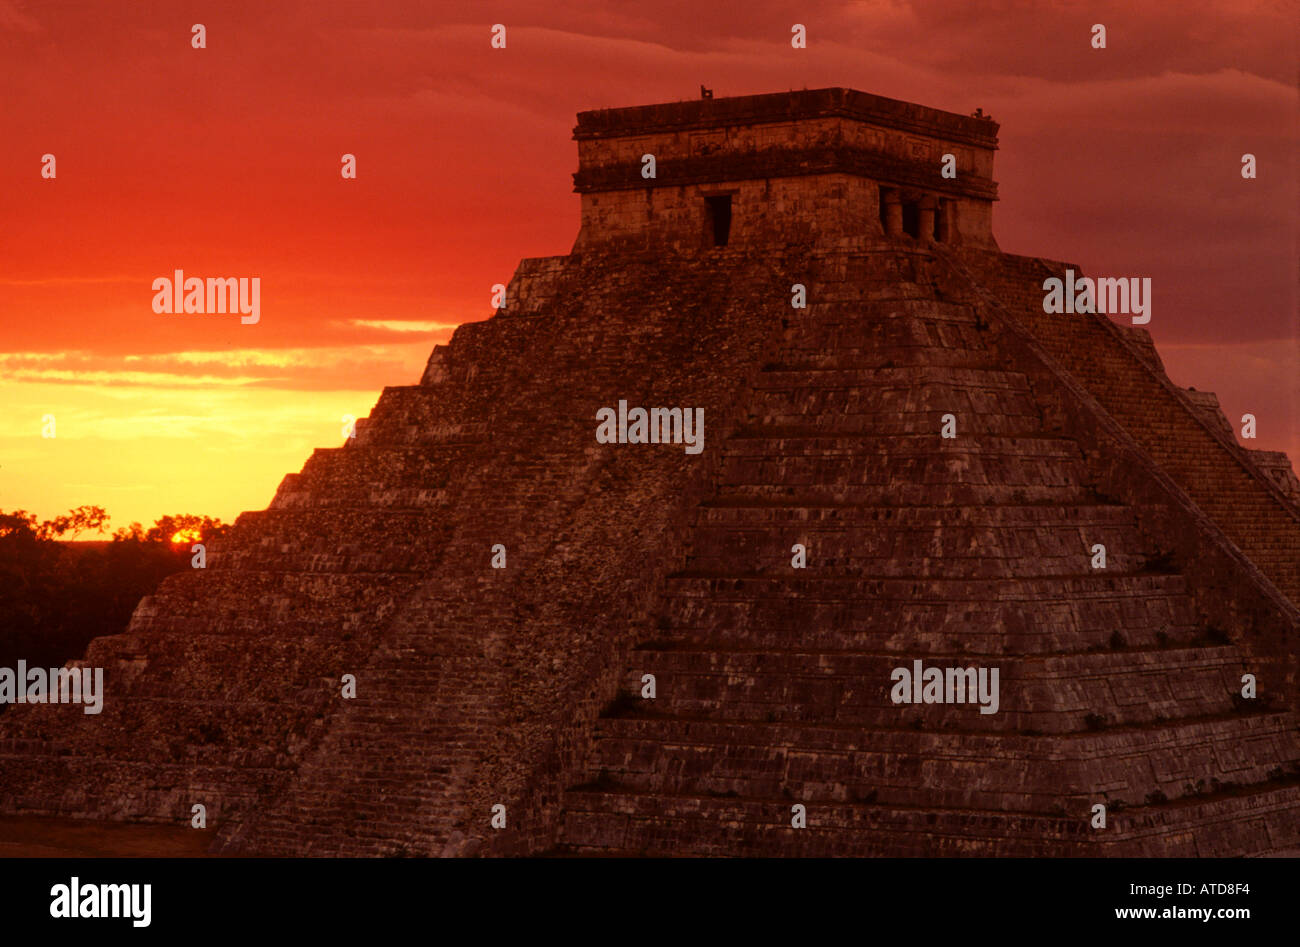 The sun sets behind the Pyramid At Chichen Itza on the Yucatan Peninsula of Mexico is silhouetted against the brilliant colors - Stock Image